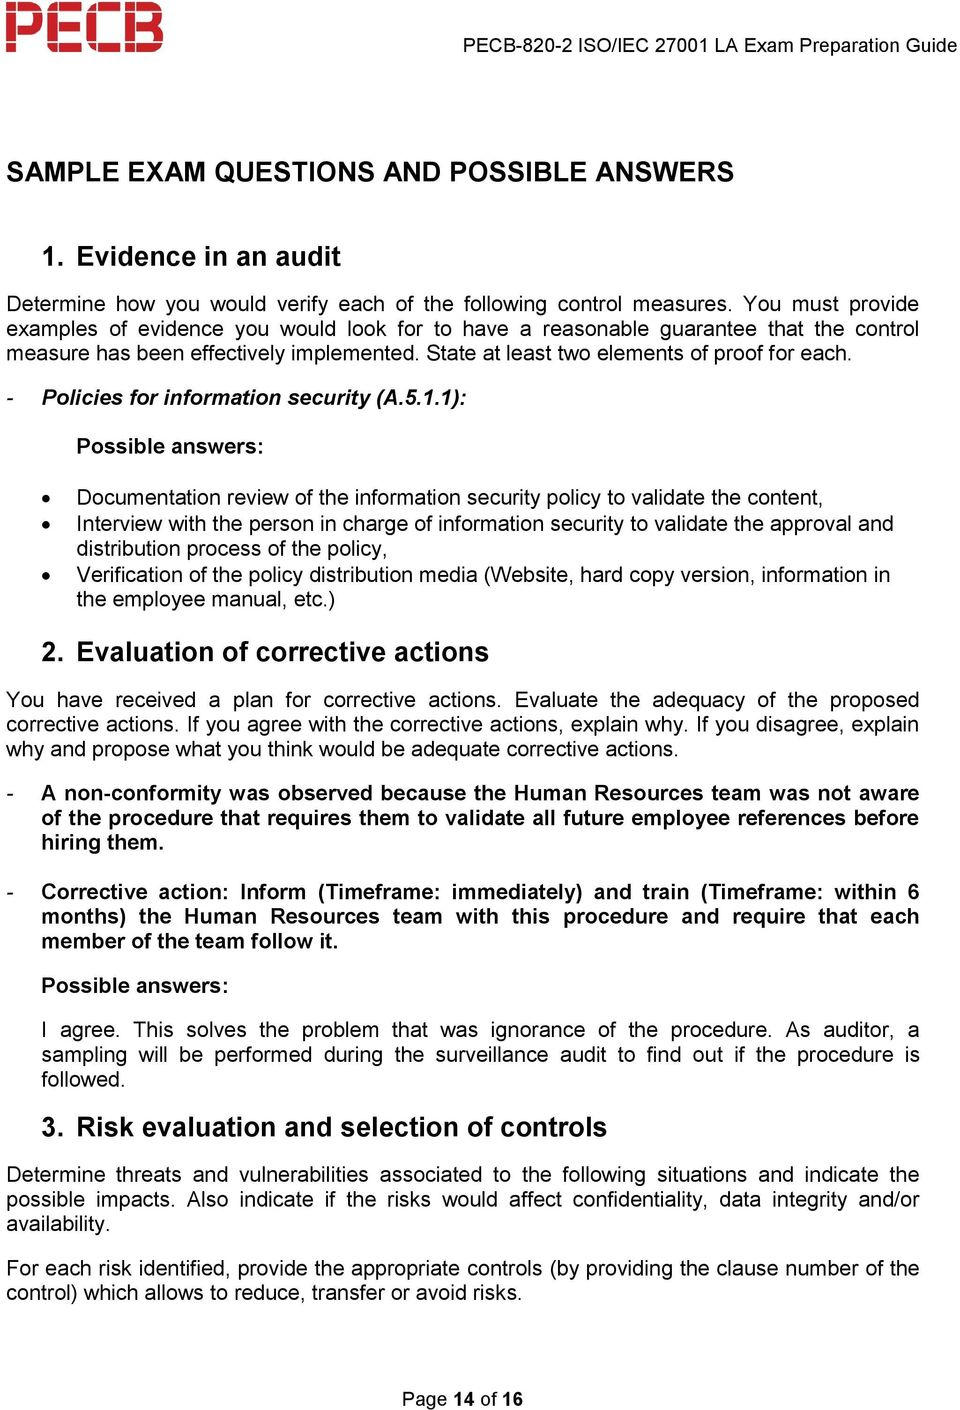 iso 22000 lead auditor sample questions